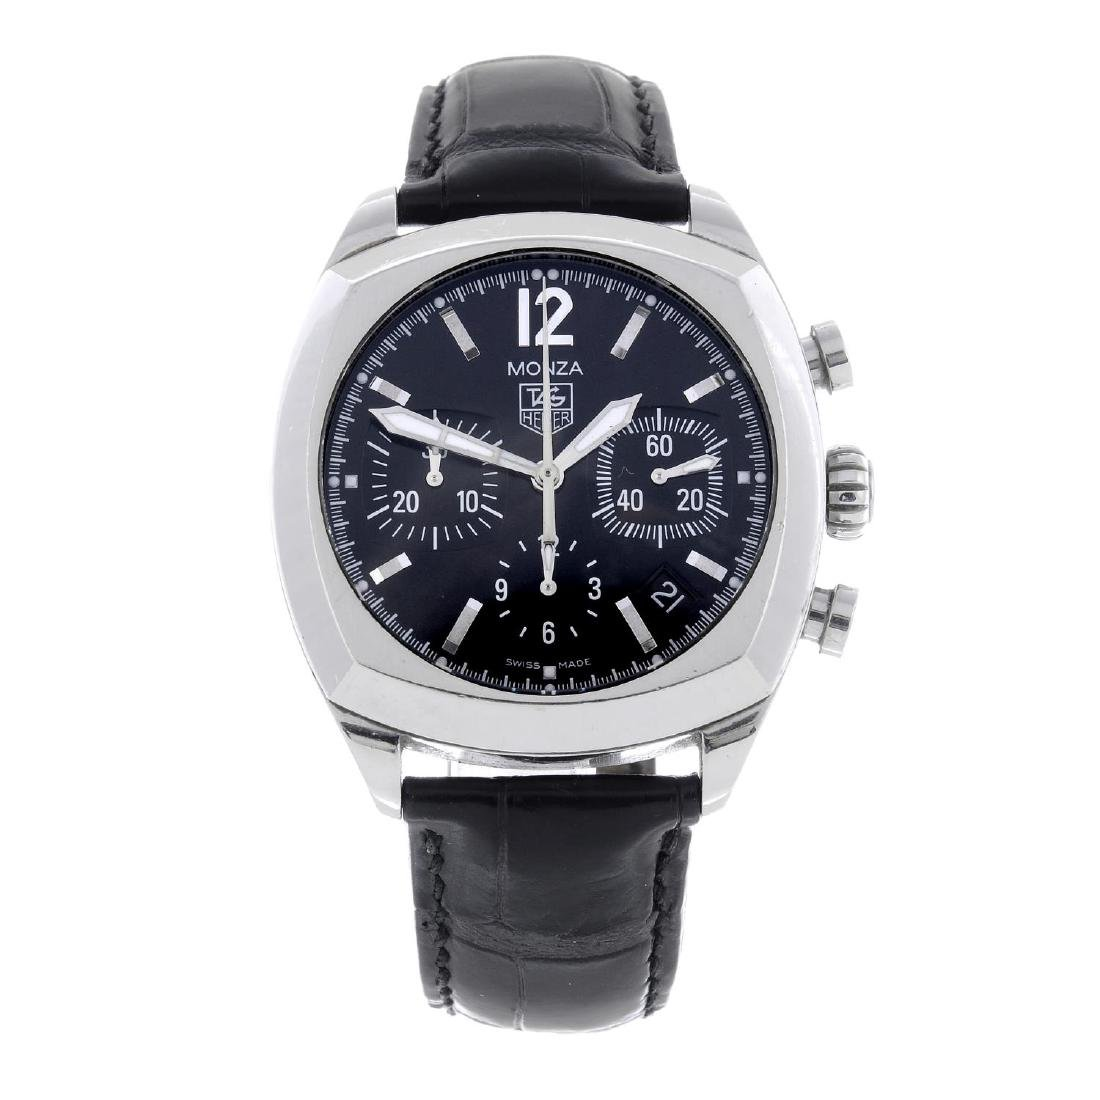 TAG HEUER - a gentleman's Monza chronograph wrist